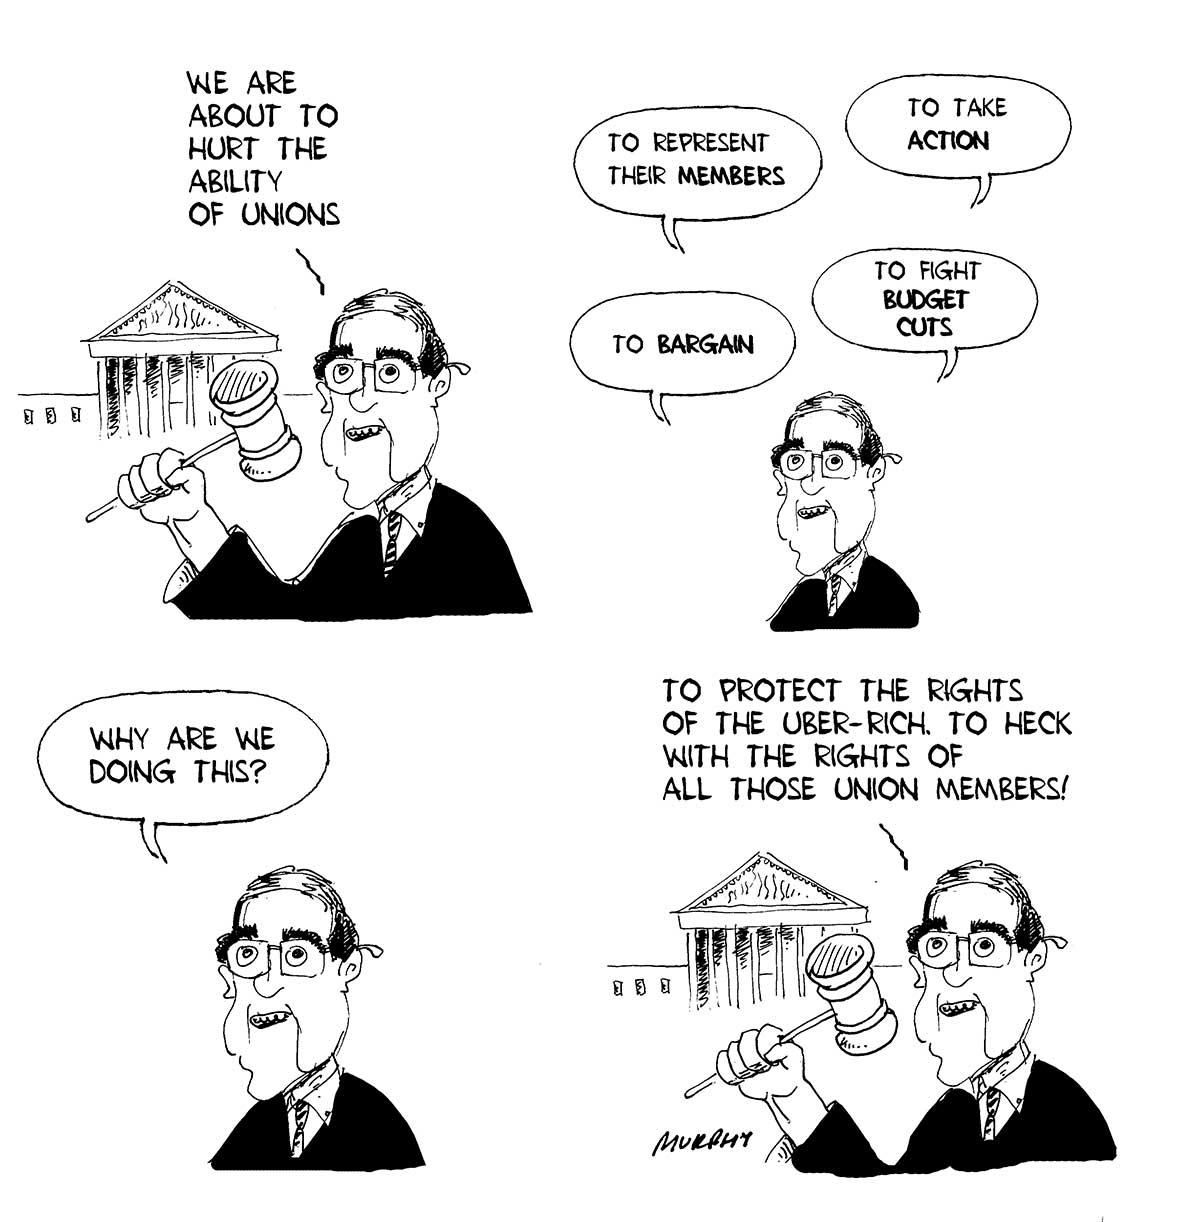 Justice Scalia expounds the Friedrichs case